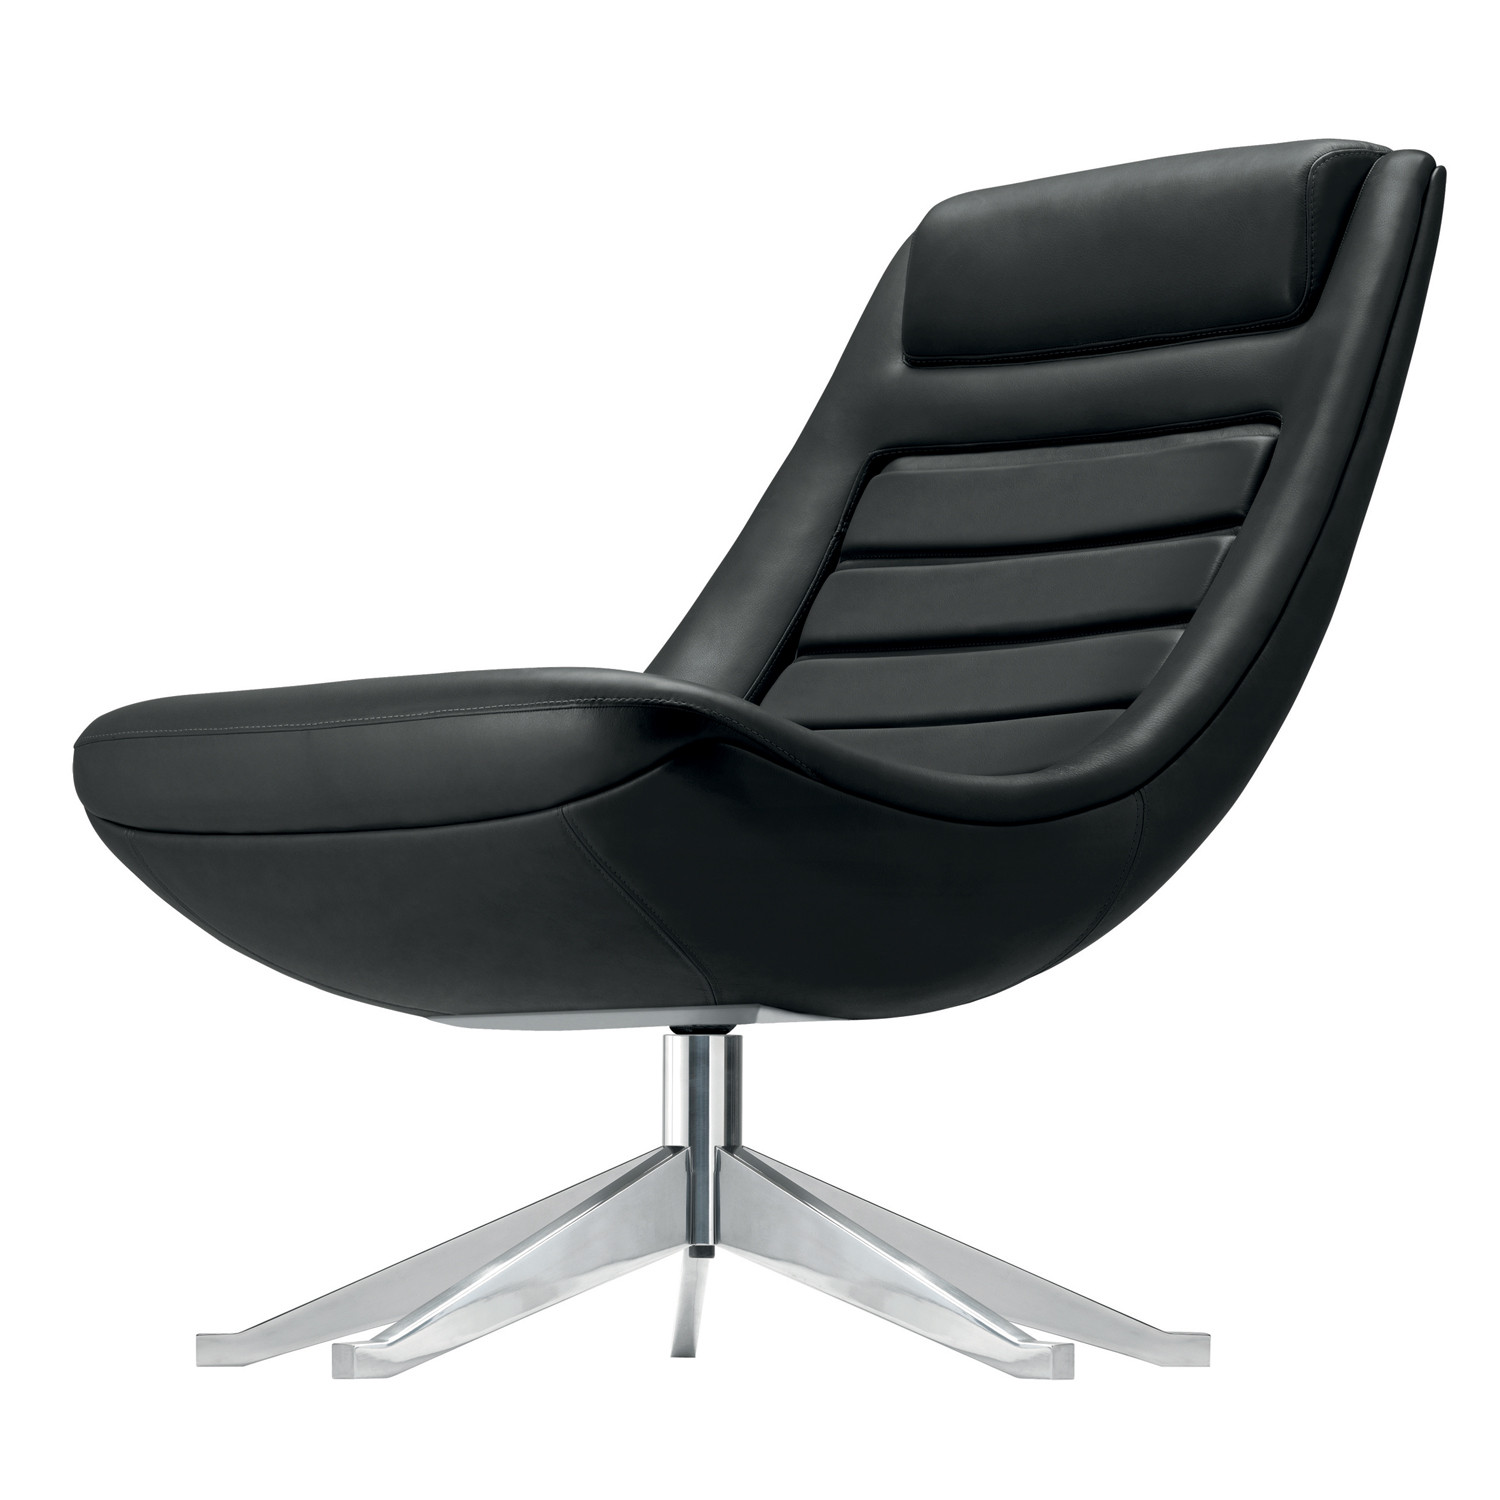 Manzù Armchair upholstered in black leather